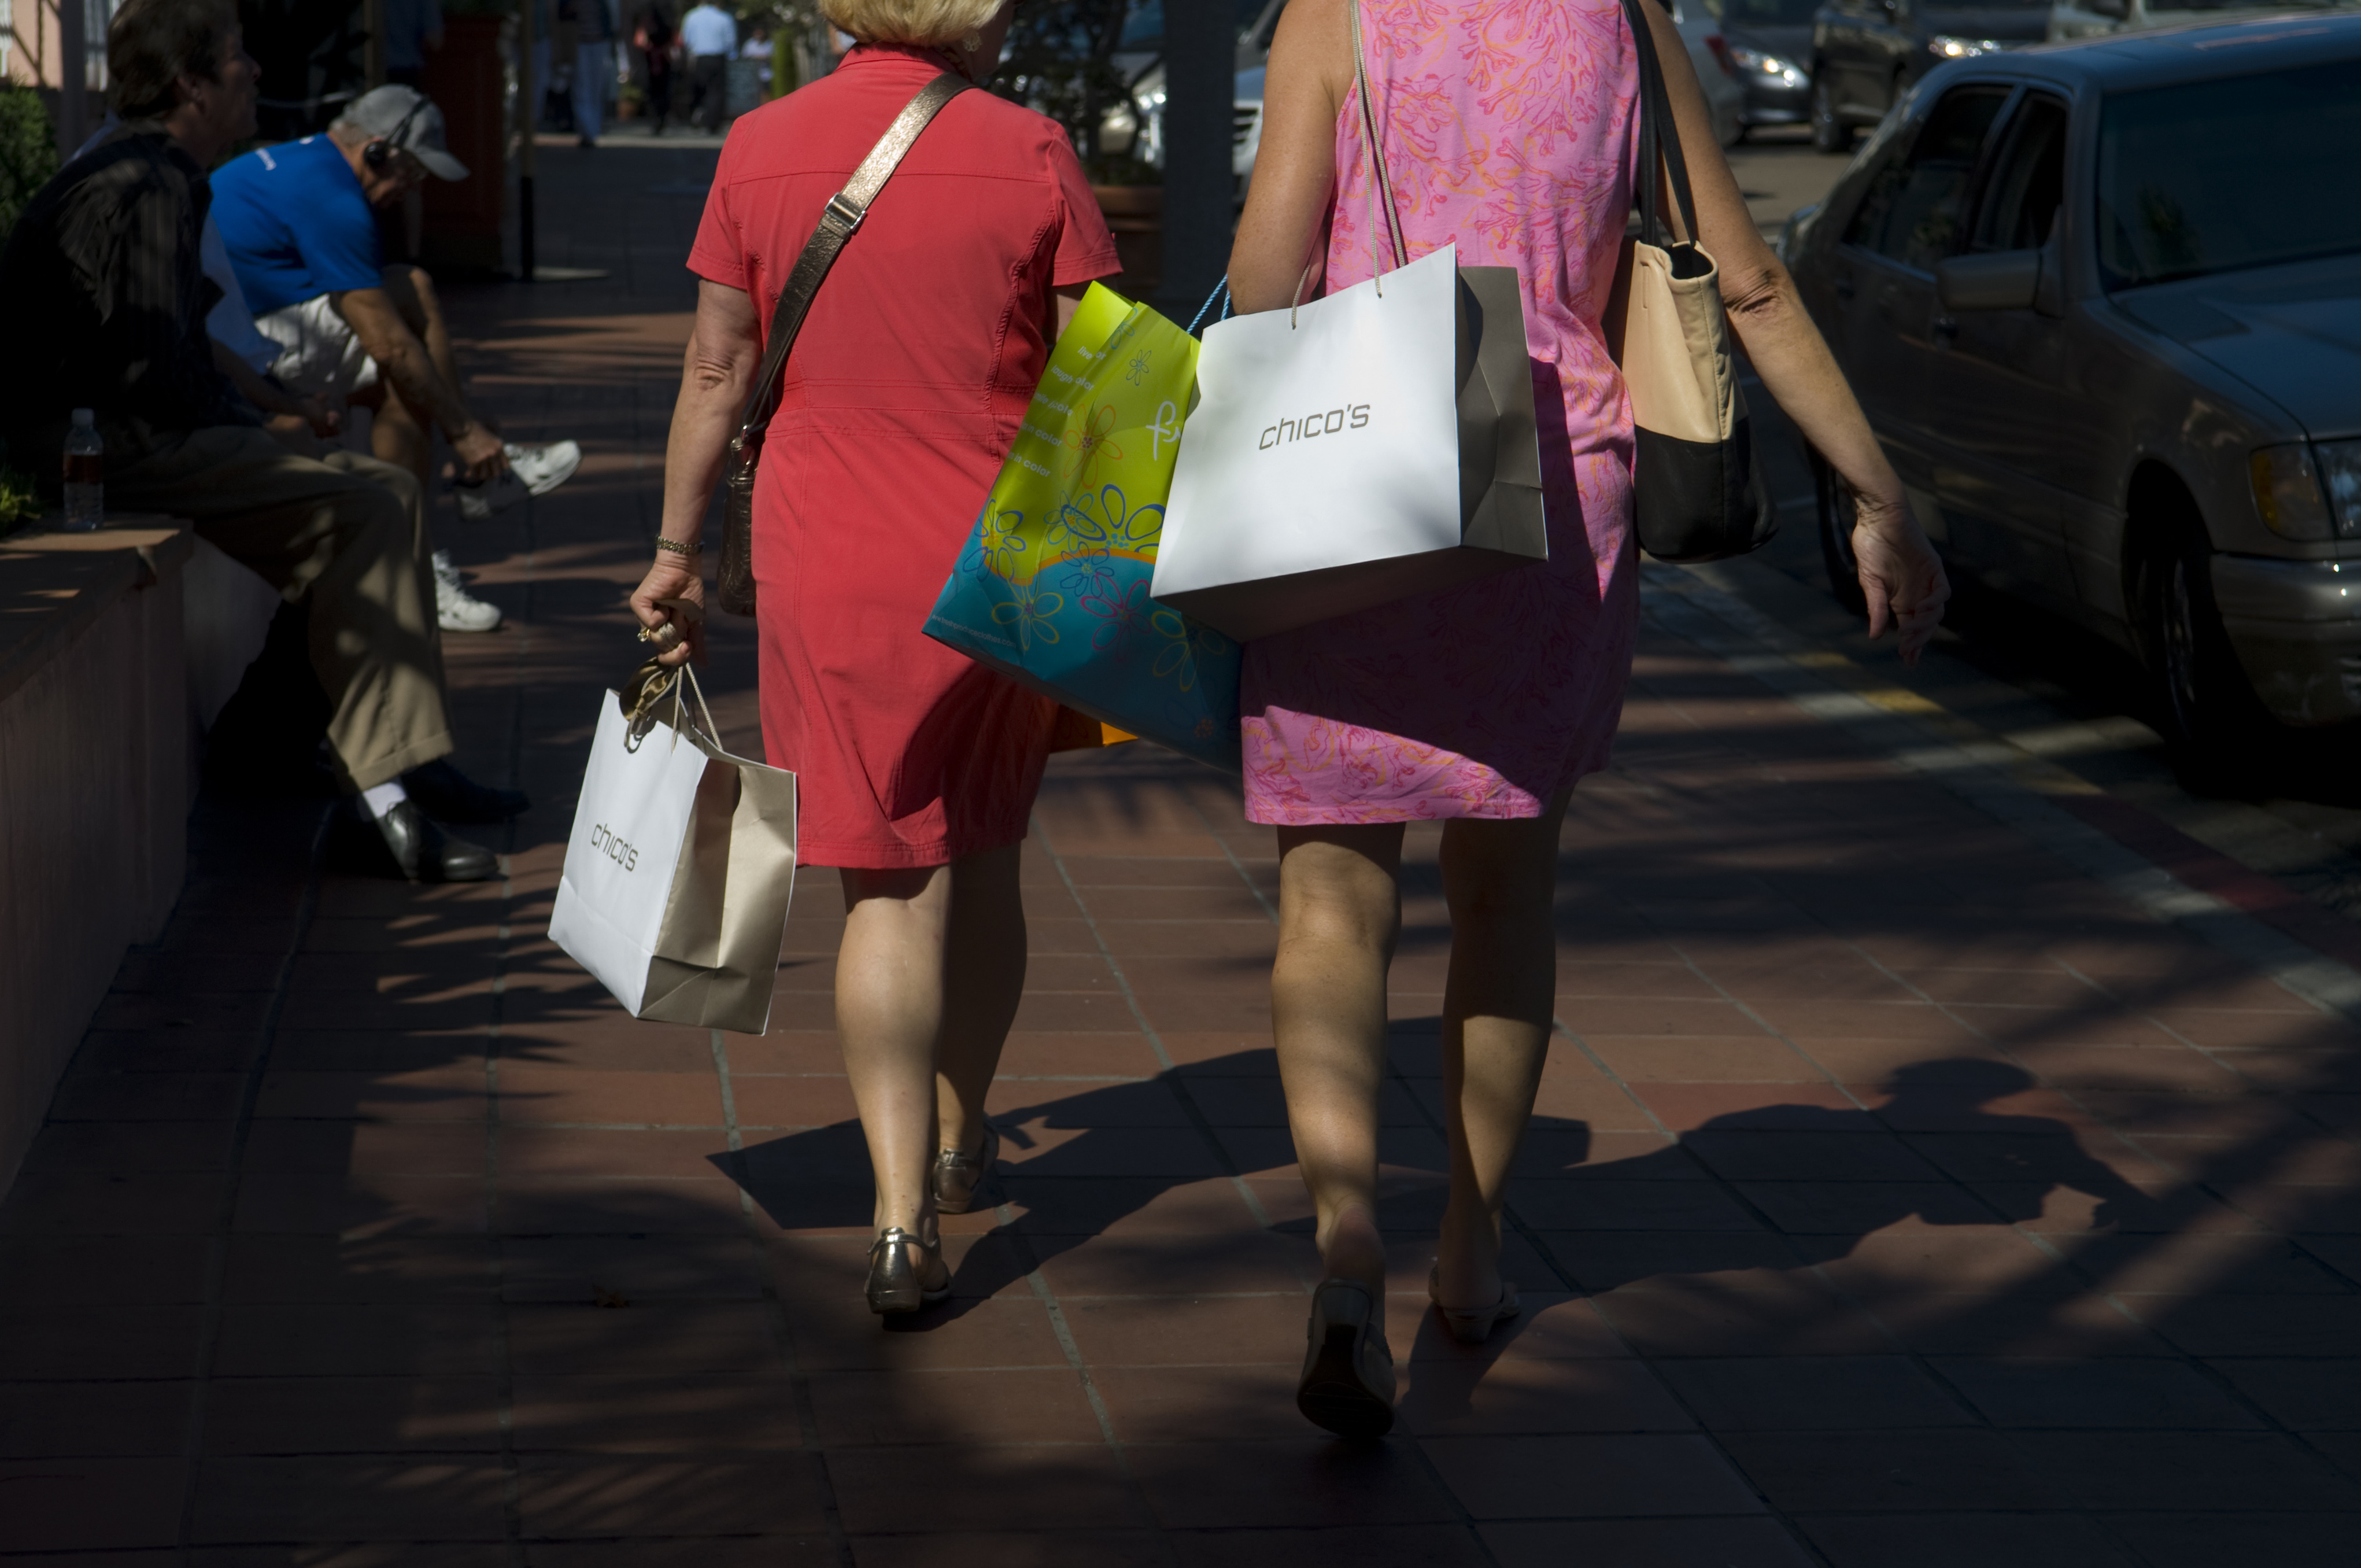 General Views Of Shoppers In La Jolla Ahead Of Consumer Confidence Data